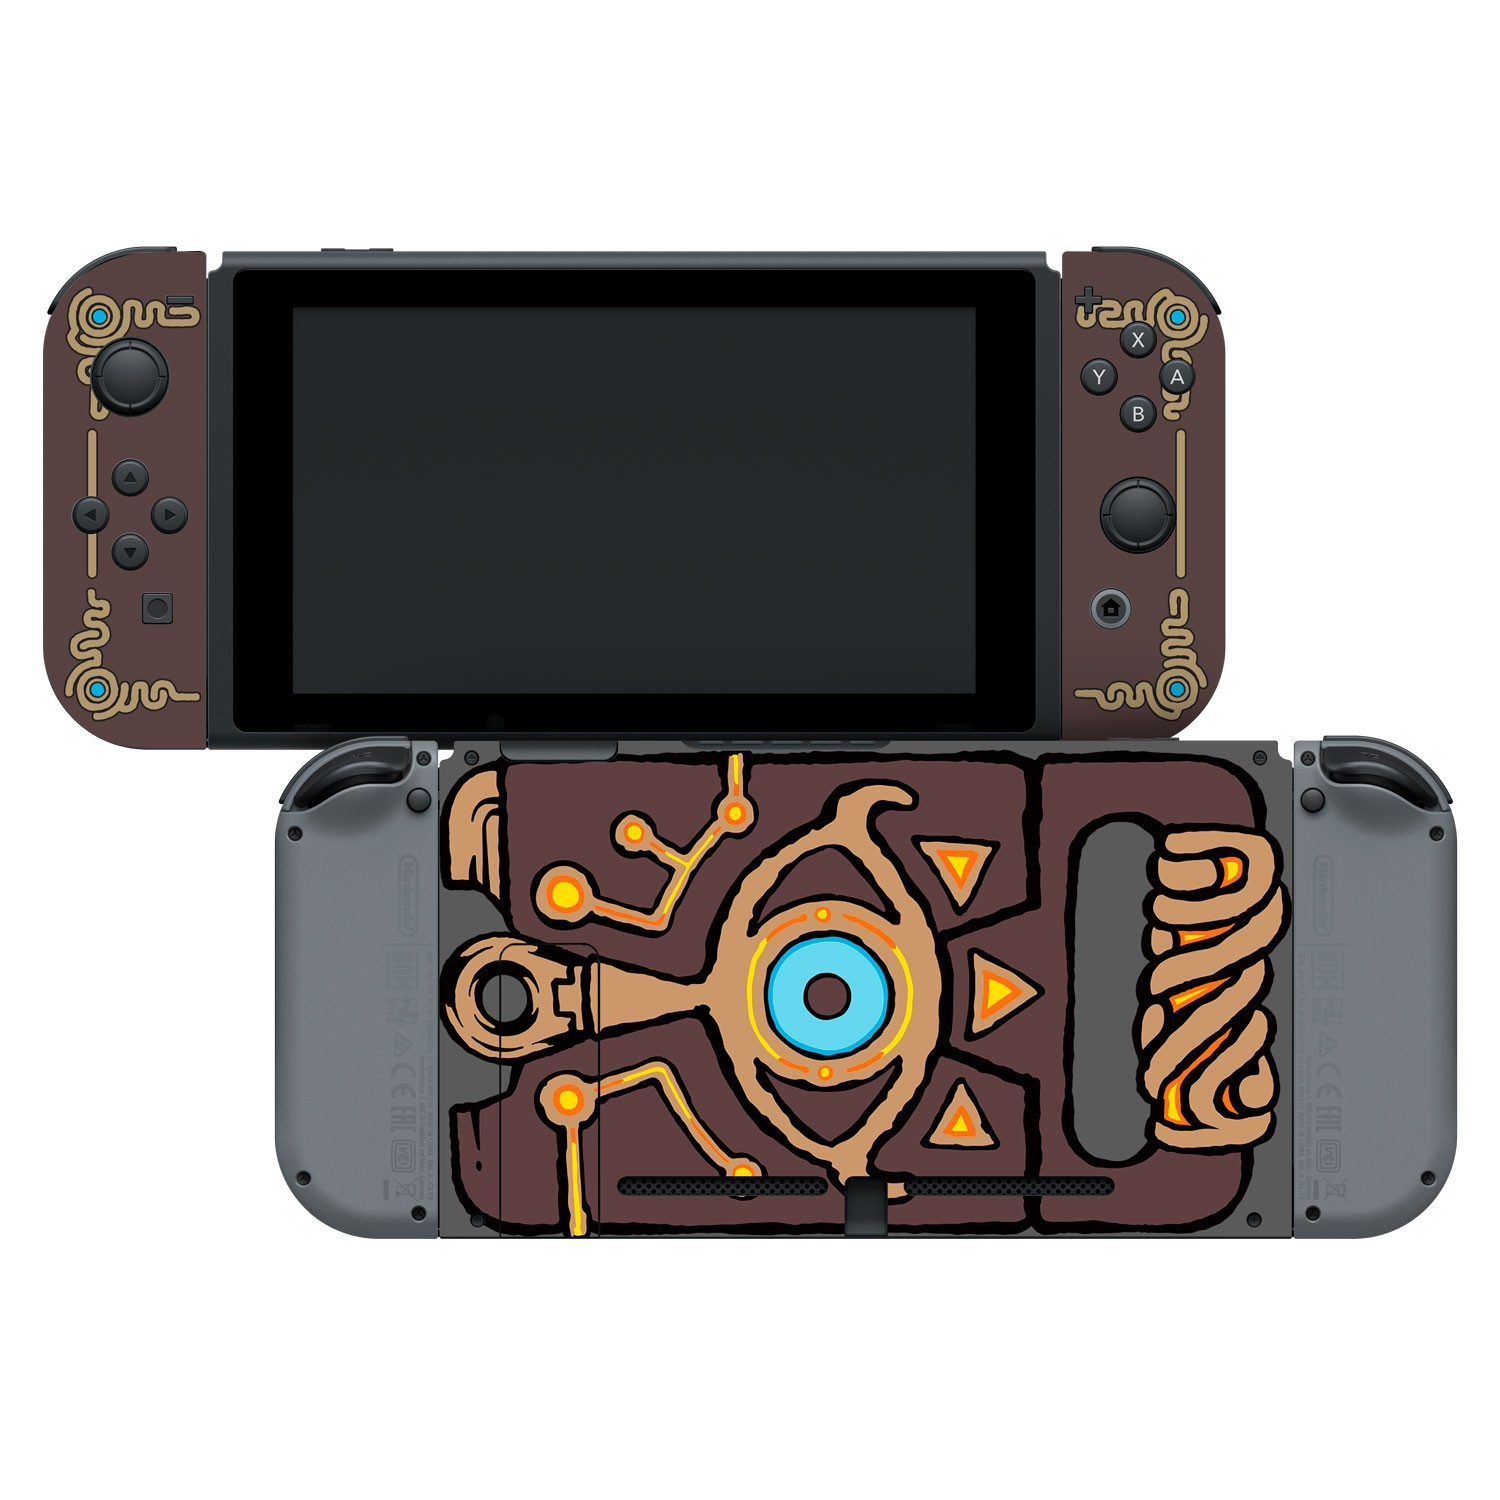 Nintendo Switch Skin & Screen Protector Set Officially Licensed by Nintendo - The Legend of Zelda: Breath of the Wild: Sheikah Slate